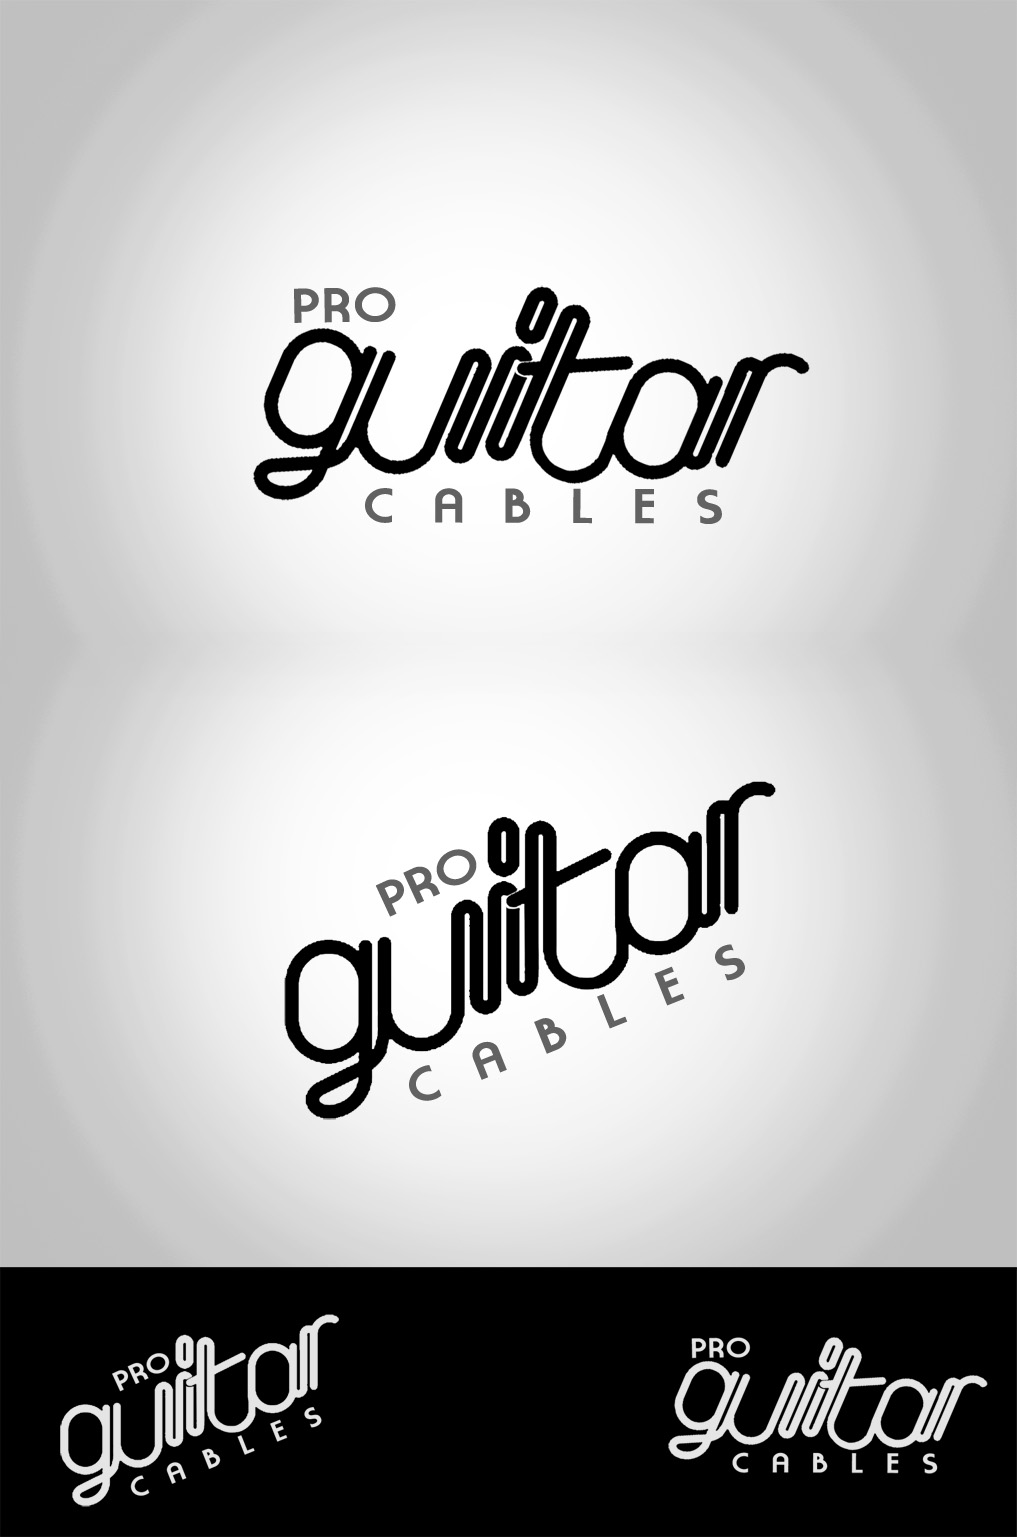 Logo Design by Shimmer Shine - Entry No. 39 in the Logo Design Contest Pro Guitar Cables Logo Design.